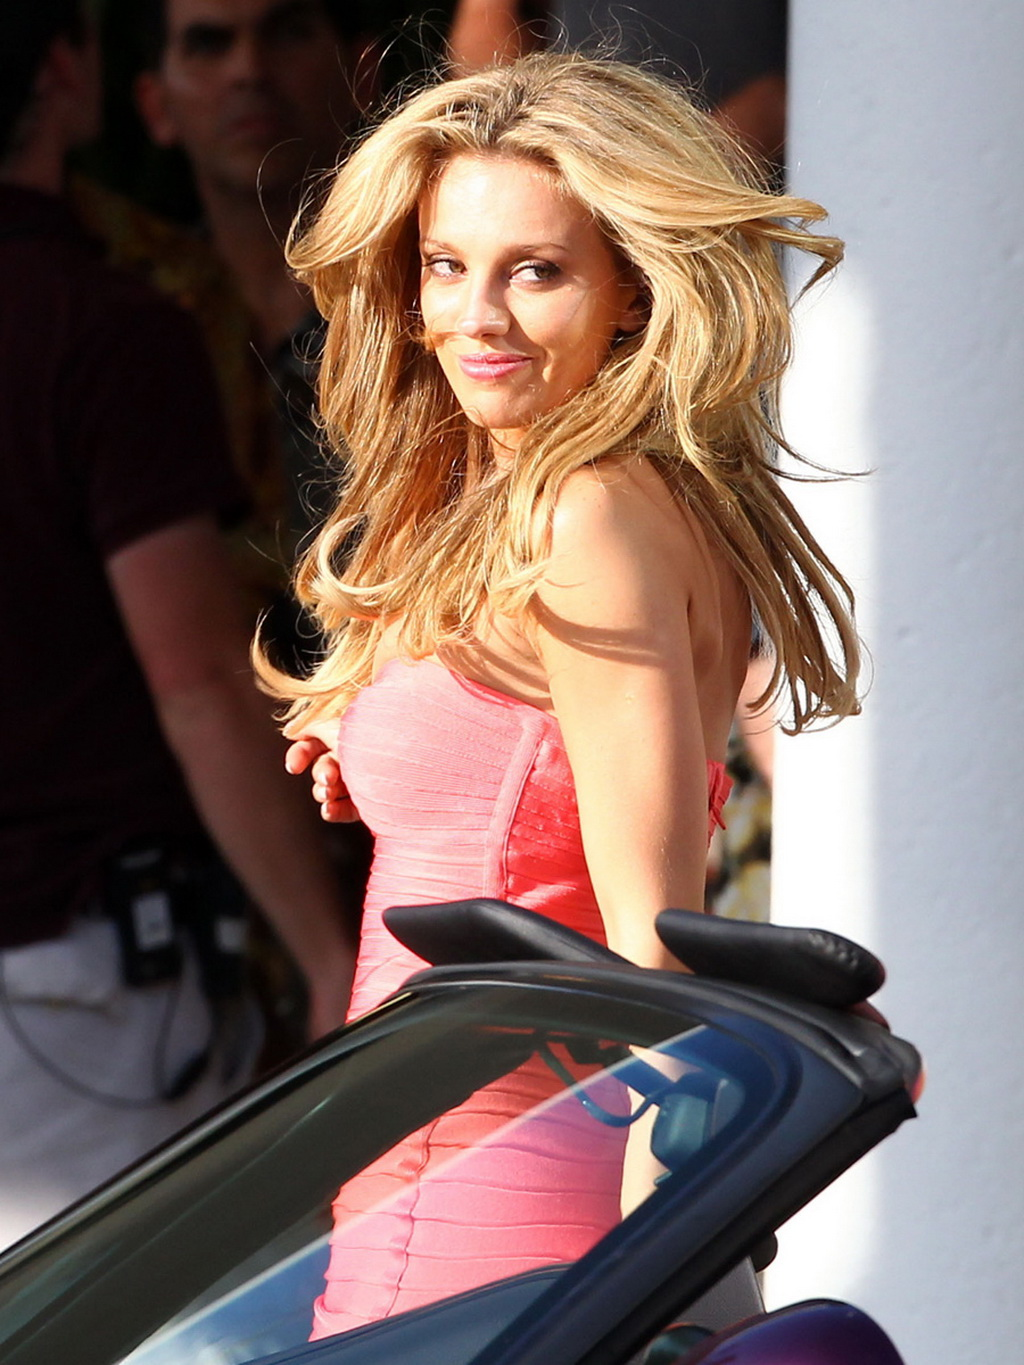 Bar paly underwear 2 in pain amp gain 2